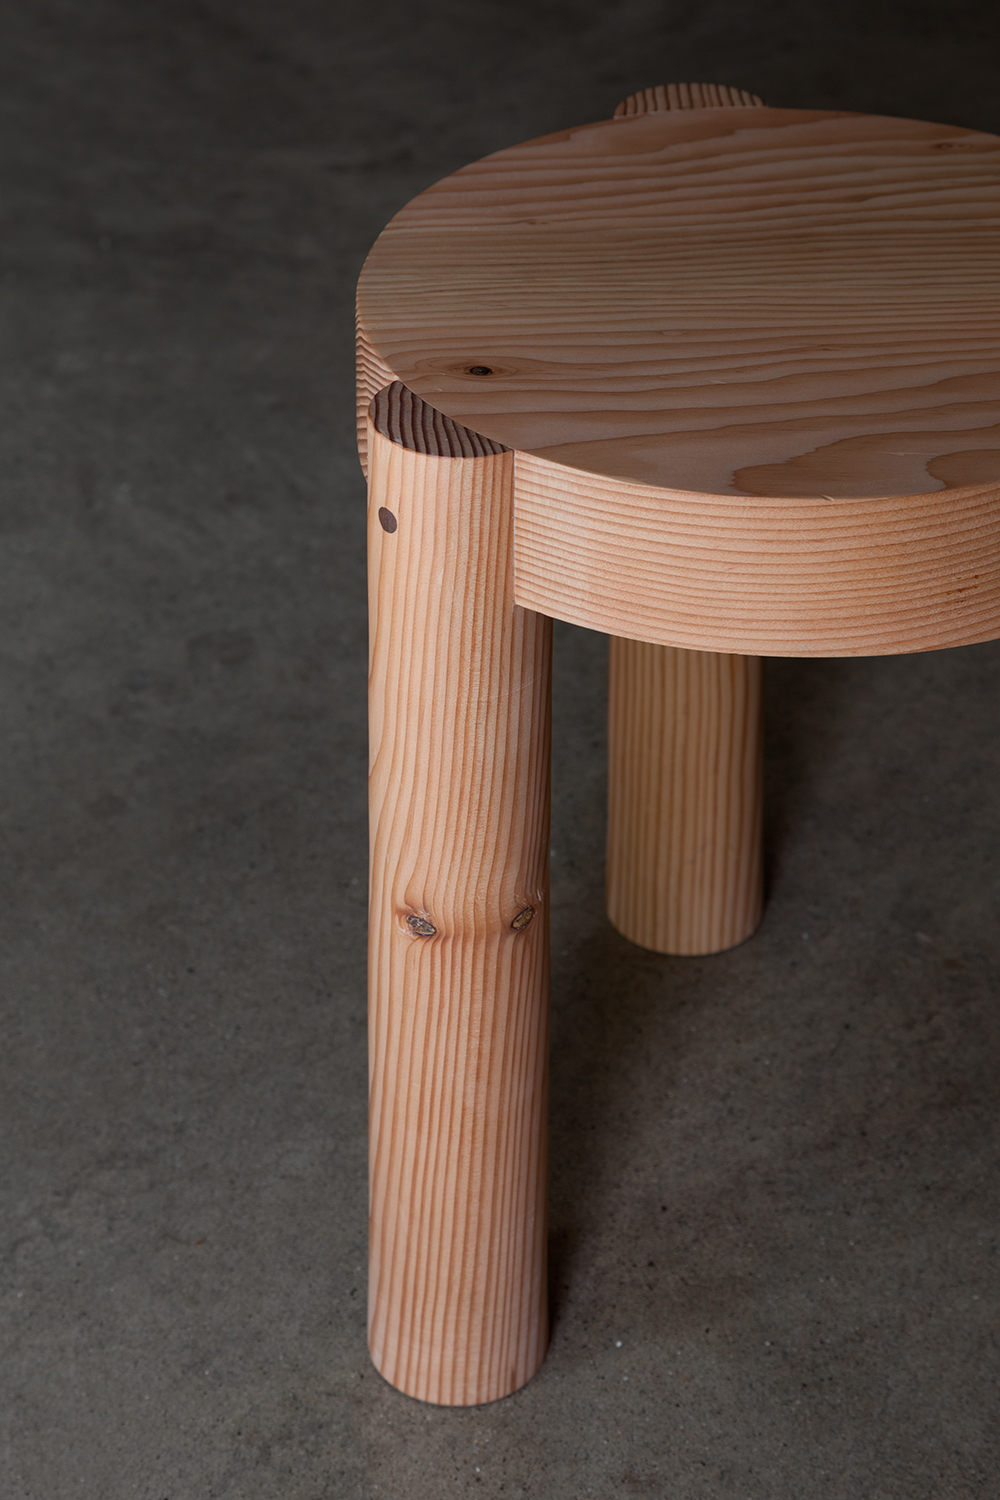 Roundy Stool, a collection of douglas fir stools and table, contact for availability.